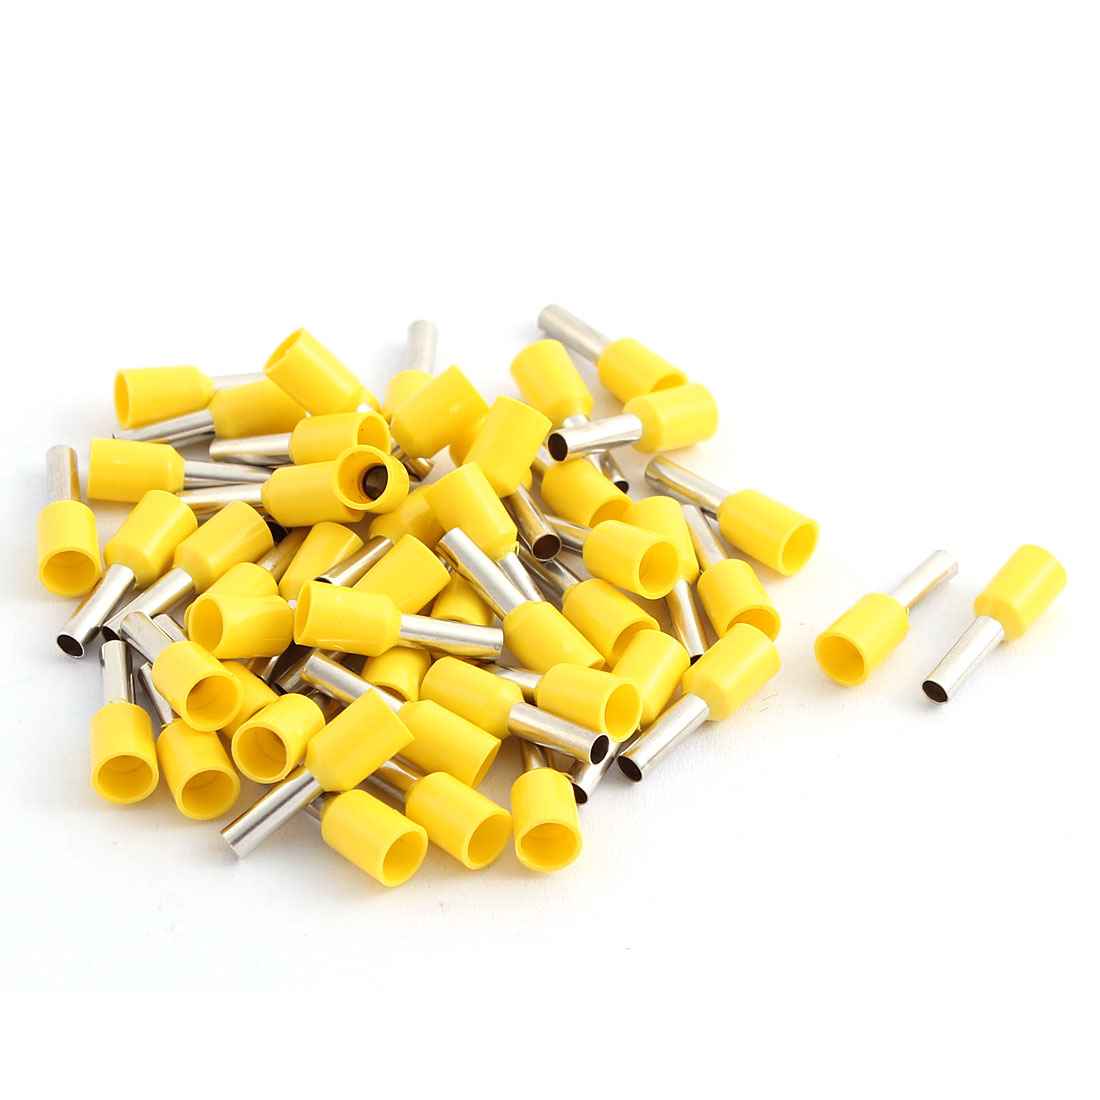 50 Pcs 2.5mm2 Crimp Wire End Terminal Insulated Bootlace Ferrule Connector Yellow